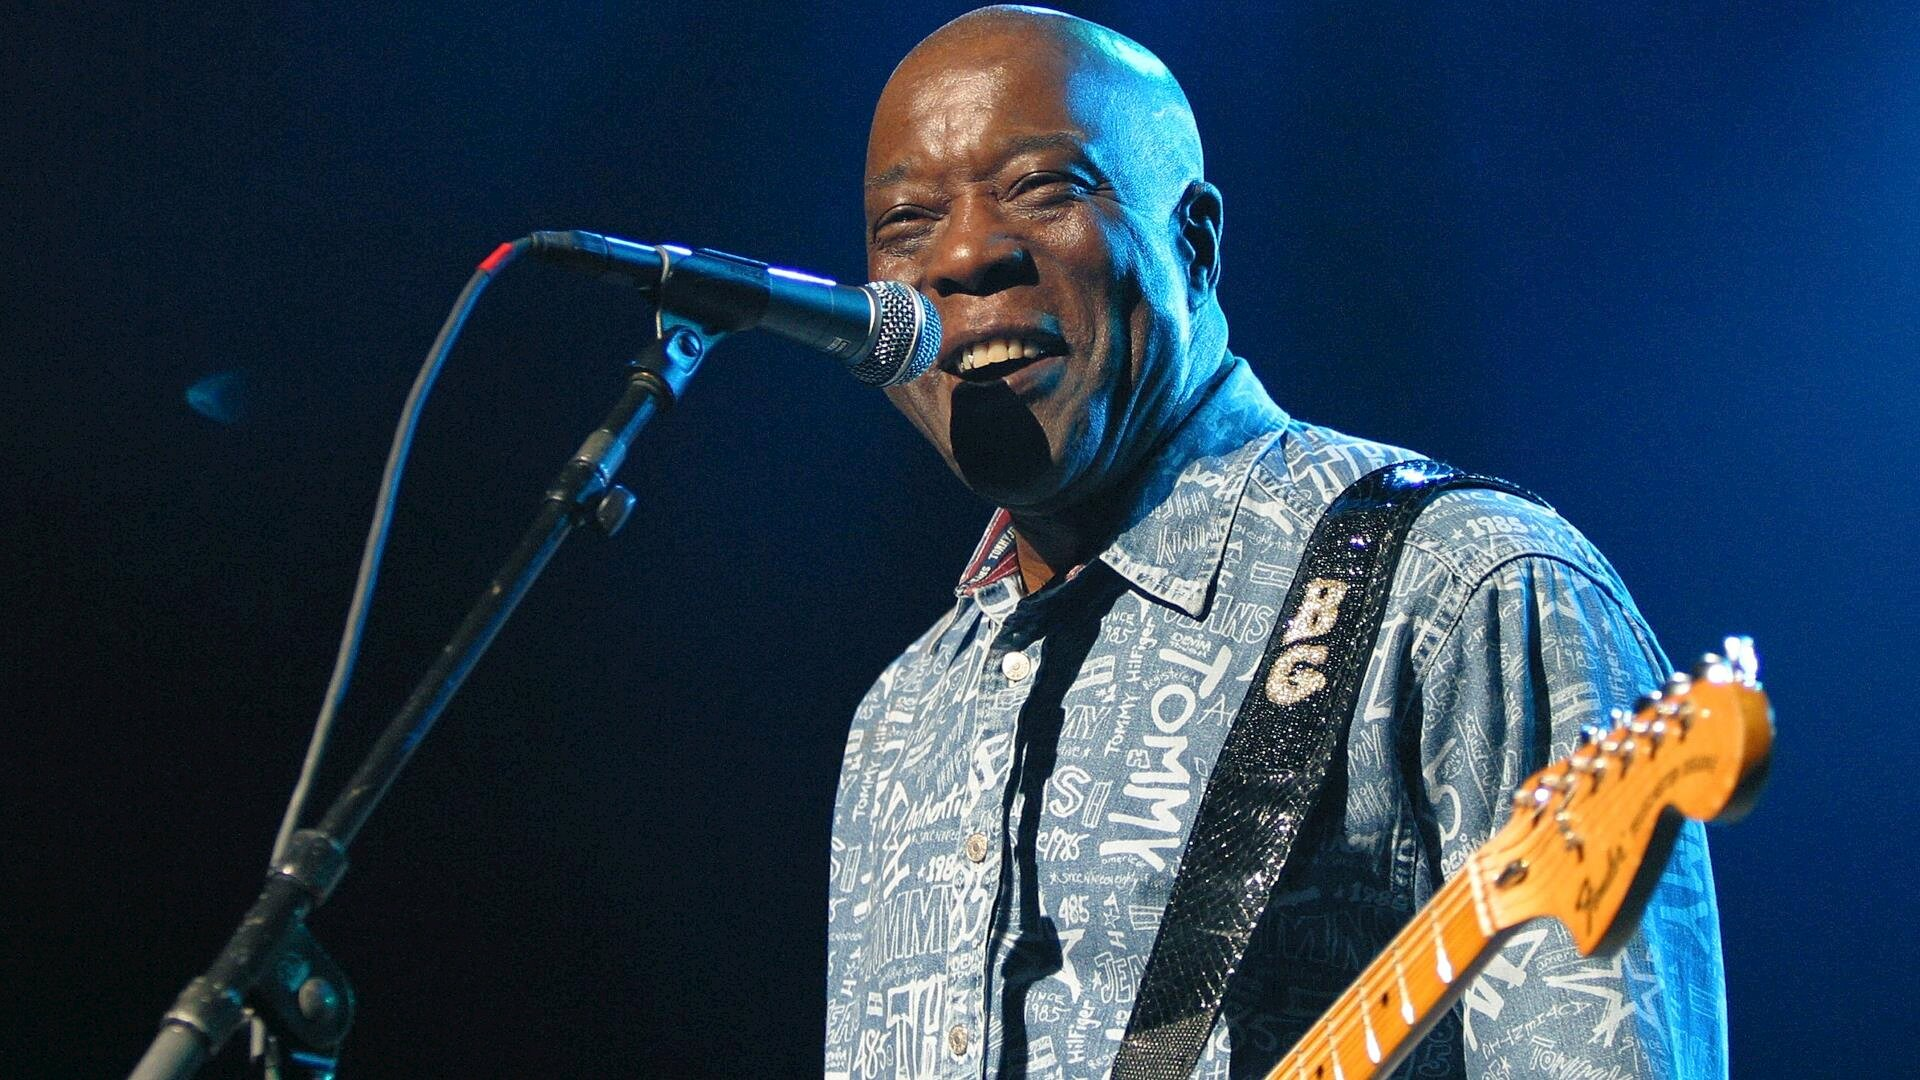 Buddy Guy Las Vegas Tickets House Of Blues August 3 2019